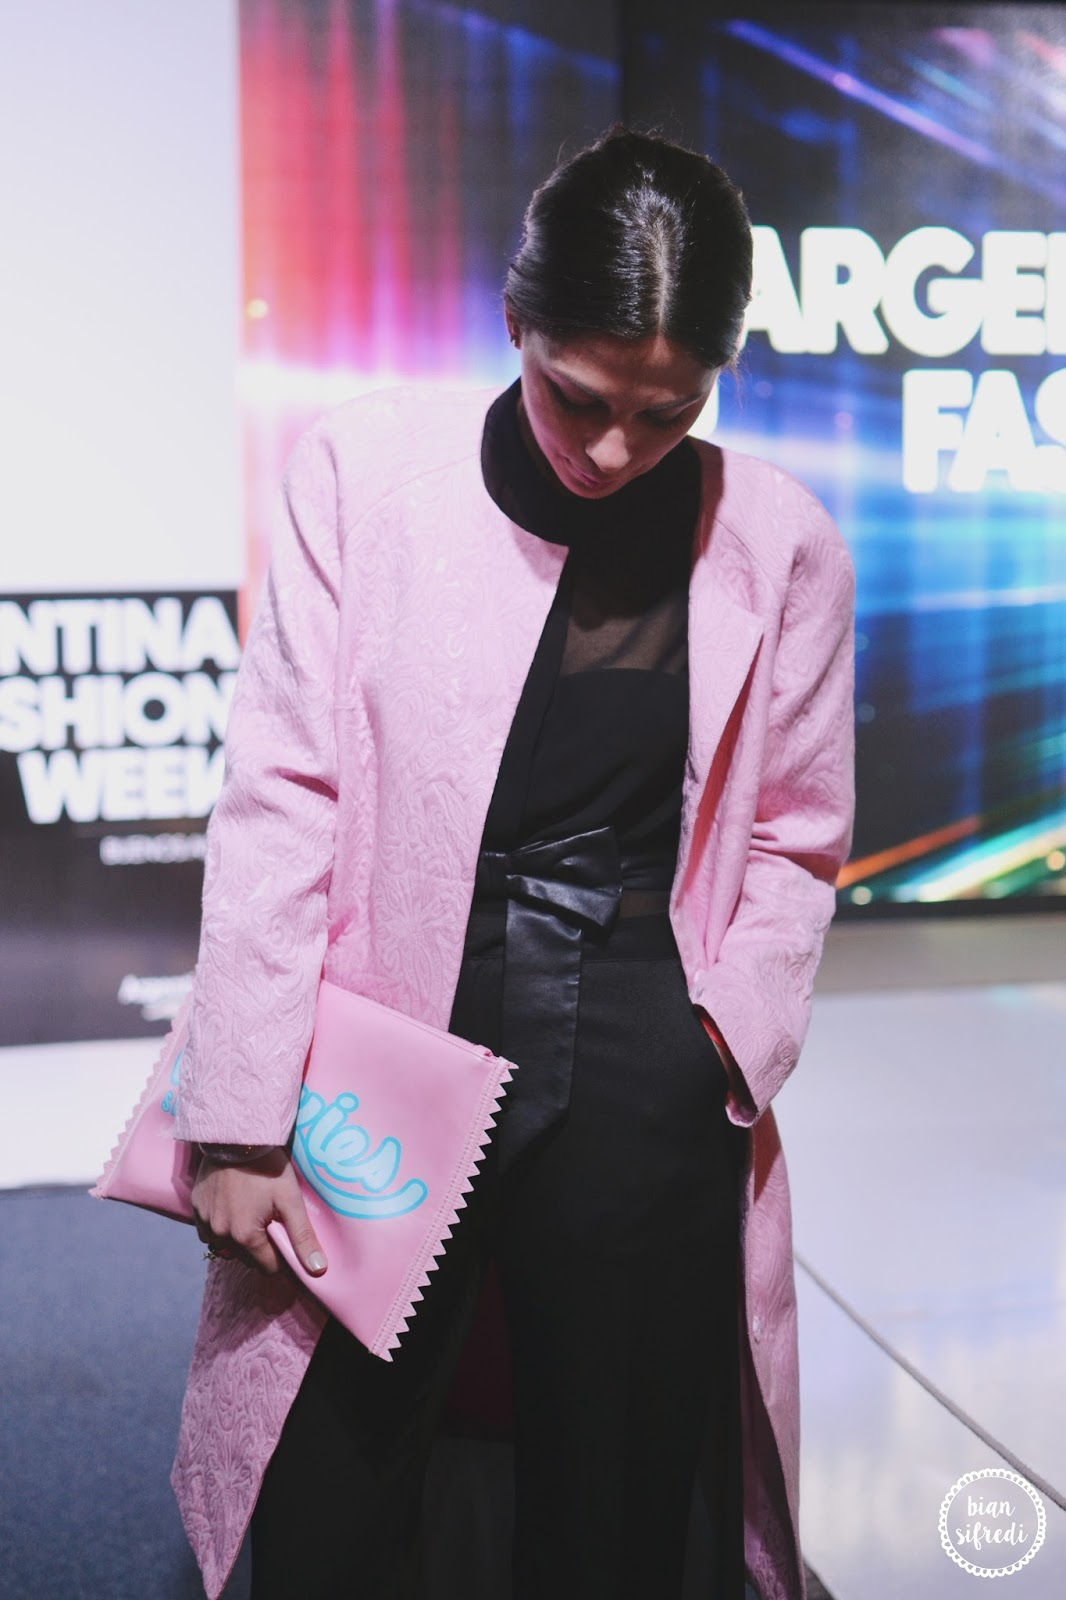 Pamela-victoria en Argentina Fashion Week 2015